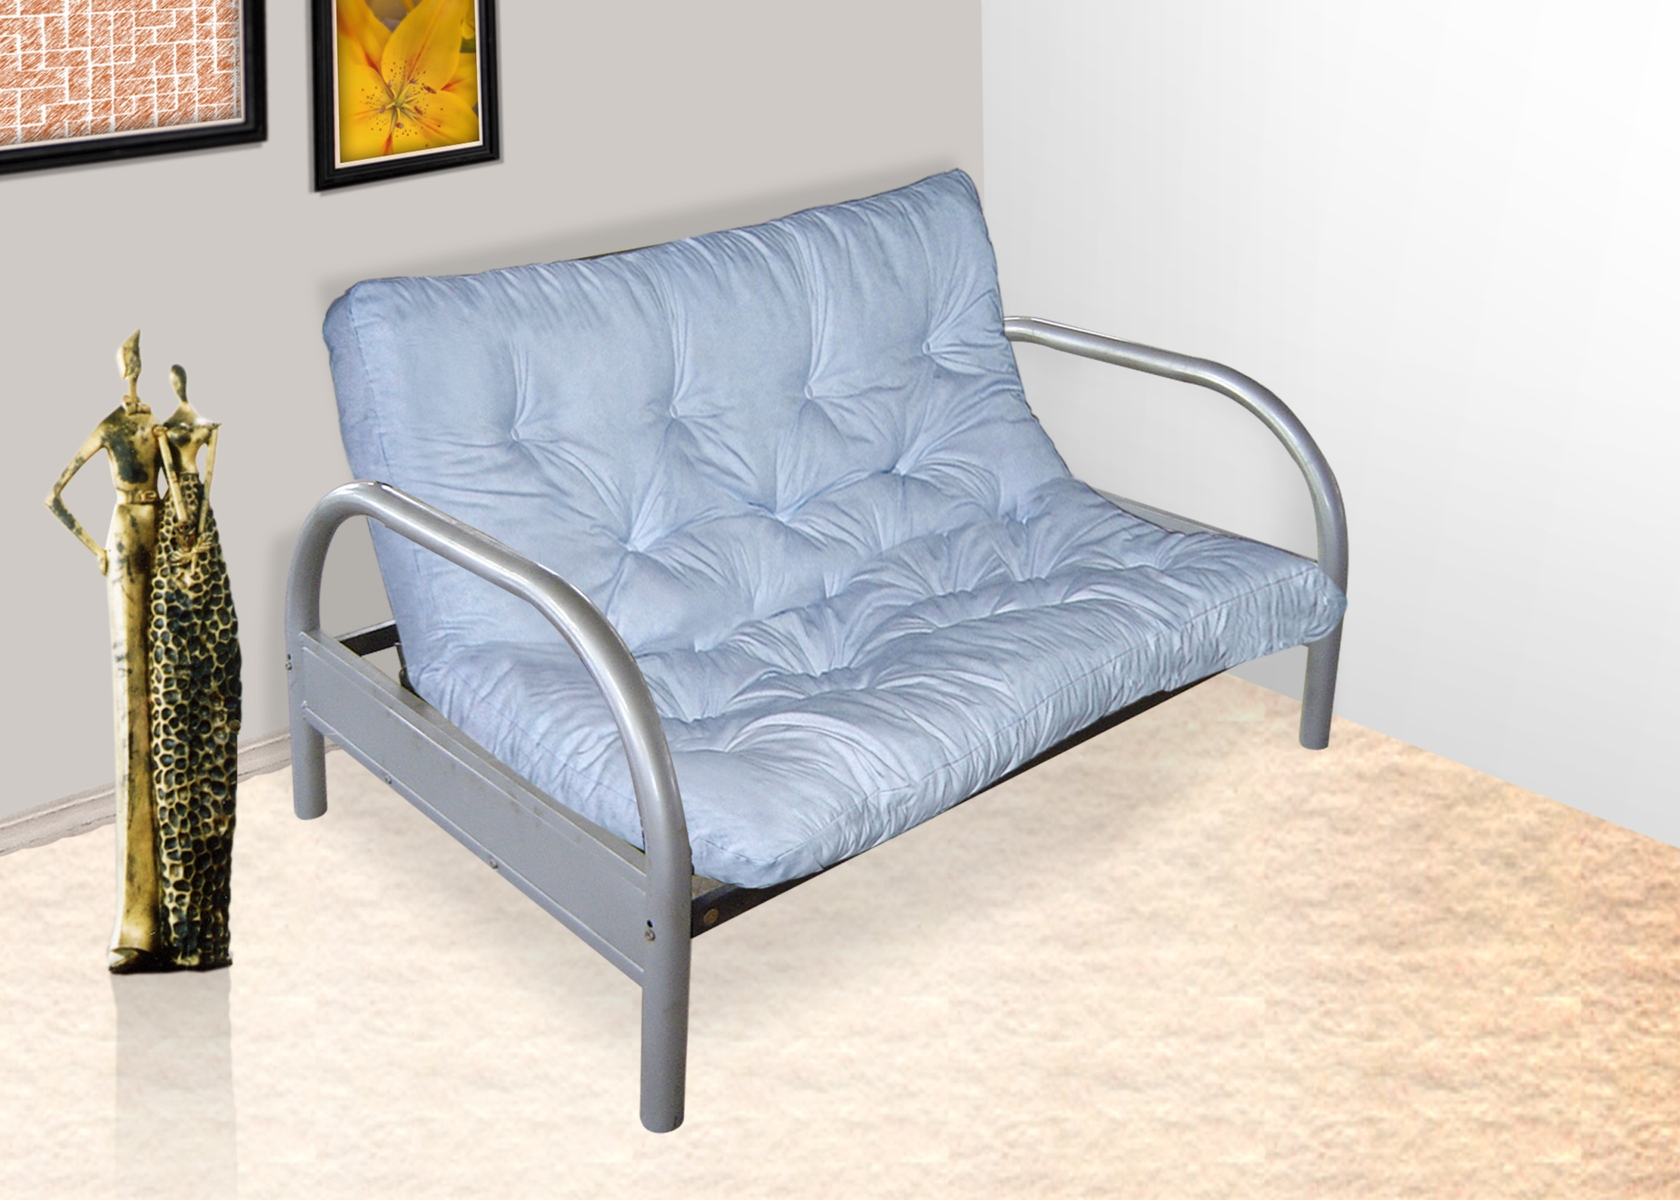 2 Seater Futon Bed